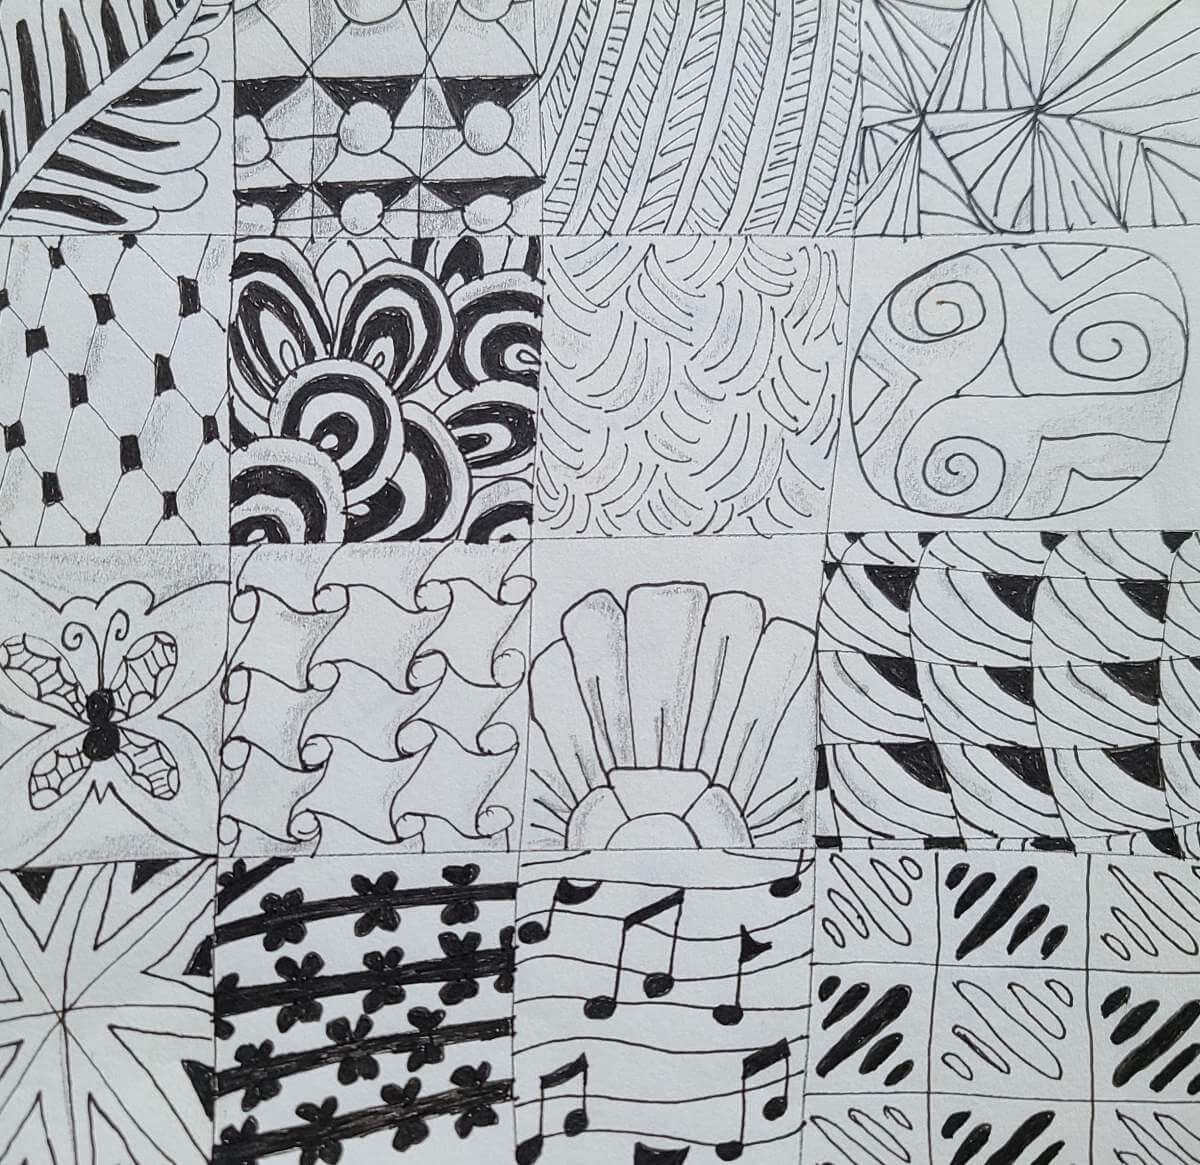 Zentangle patterns displaying an unusual way to reduce your anxiety